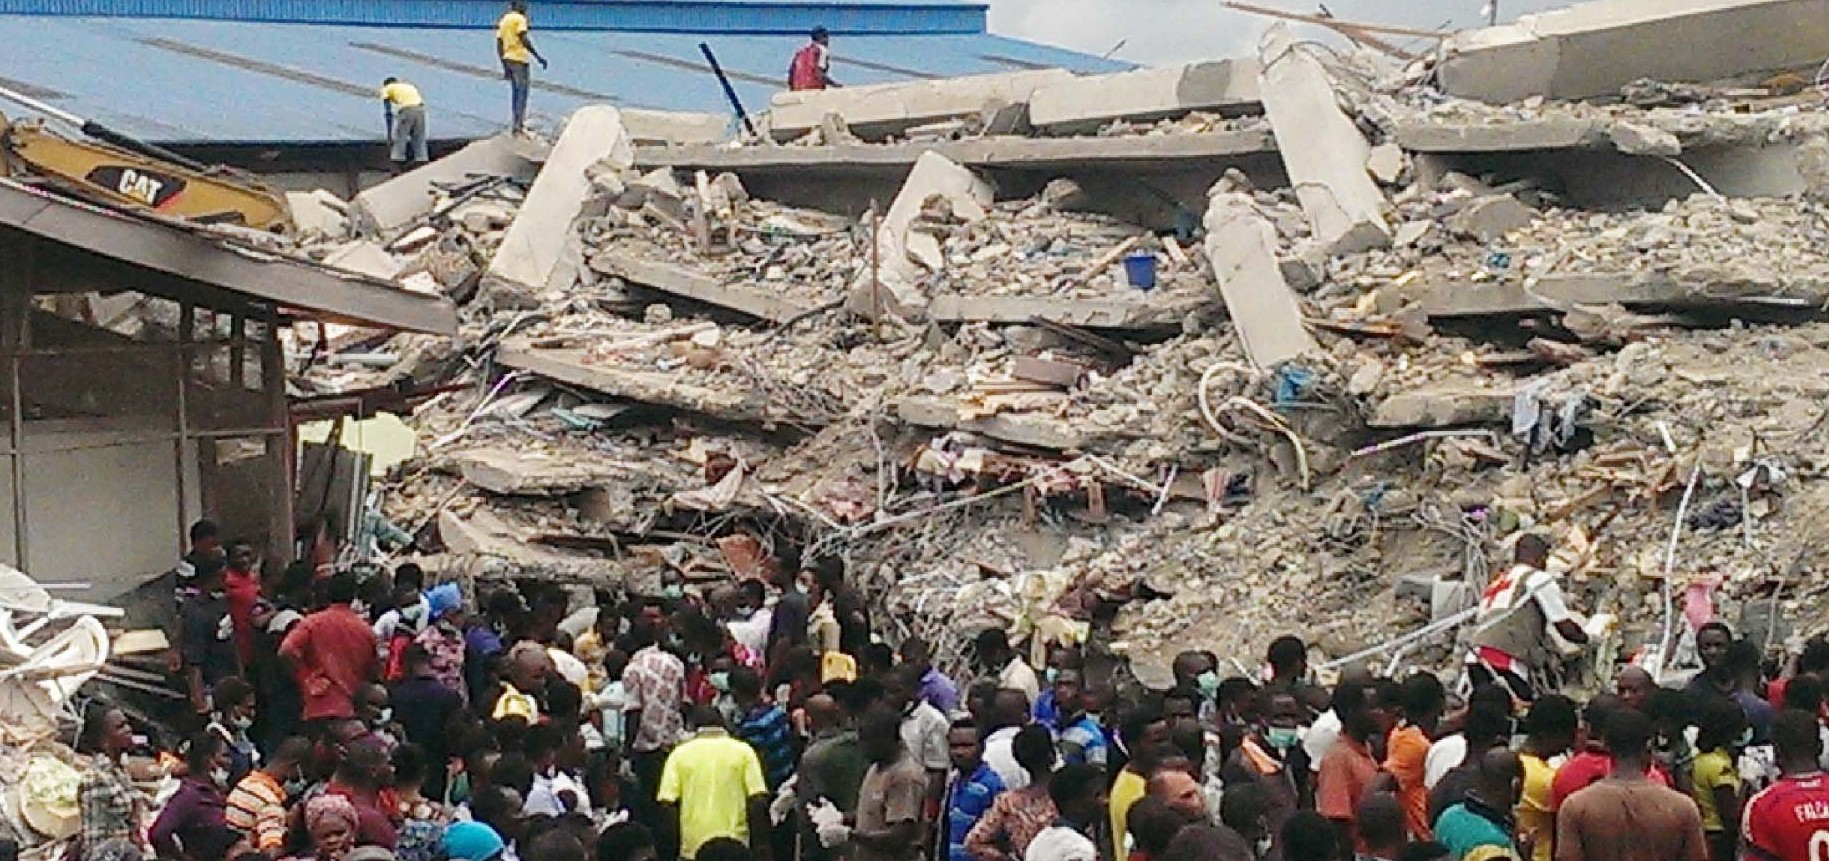 PIC.5.COLLAPSED BUILDING IN LAGOS